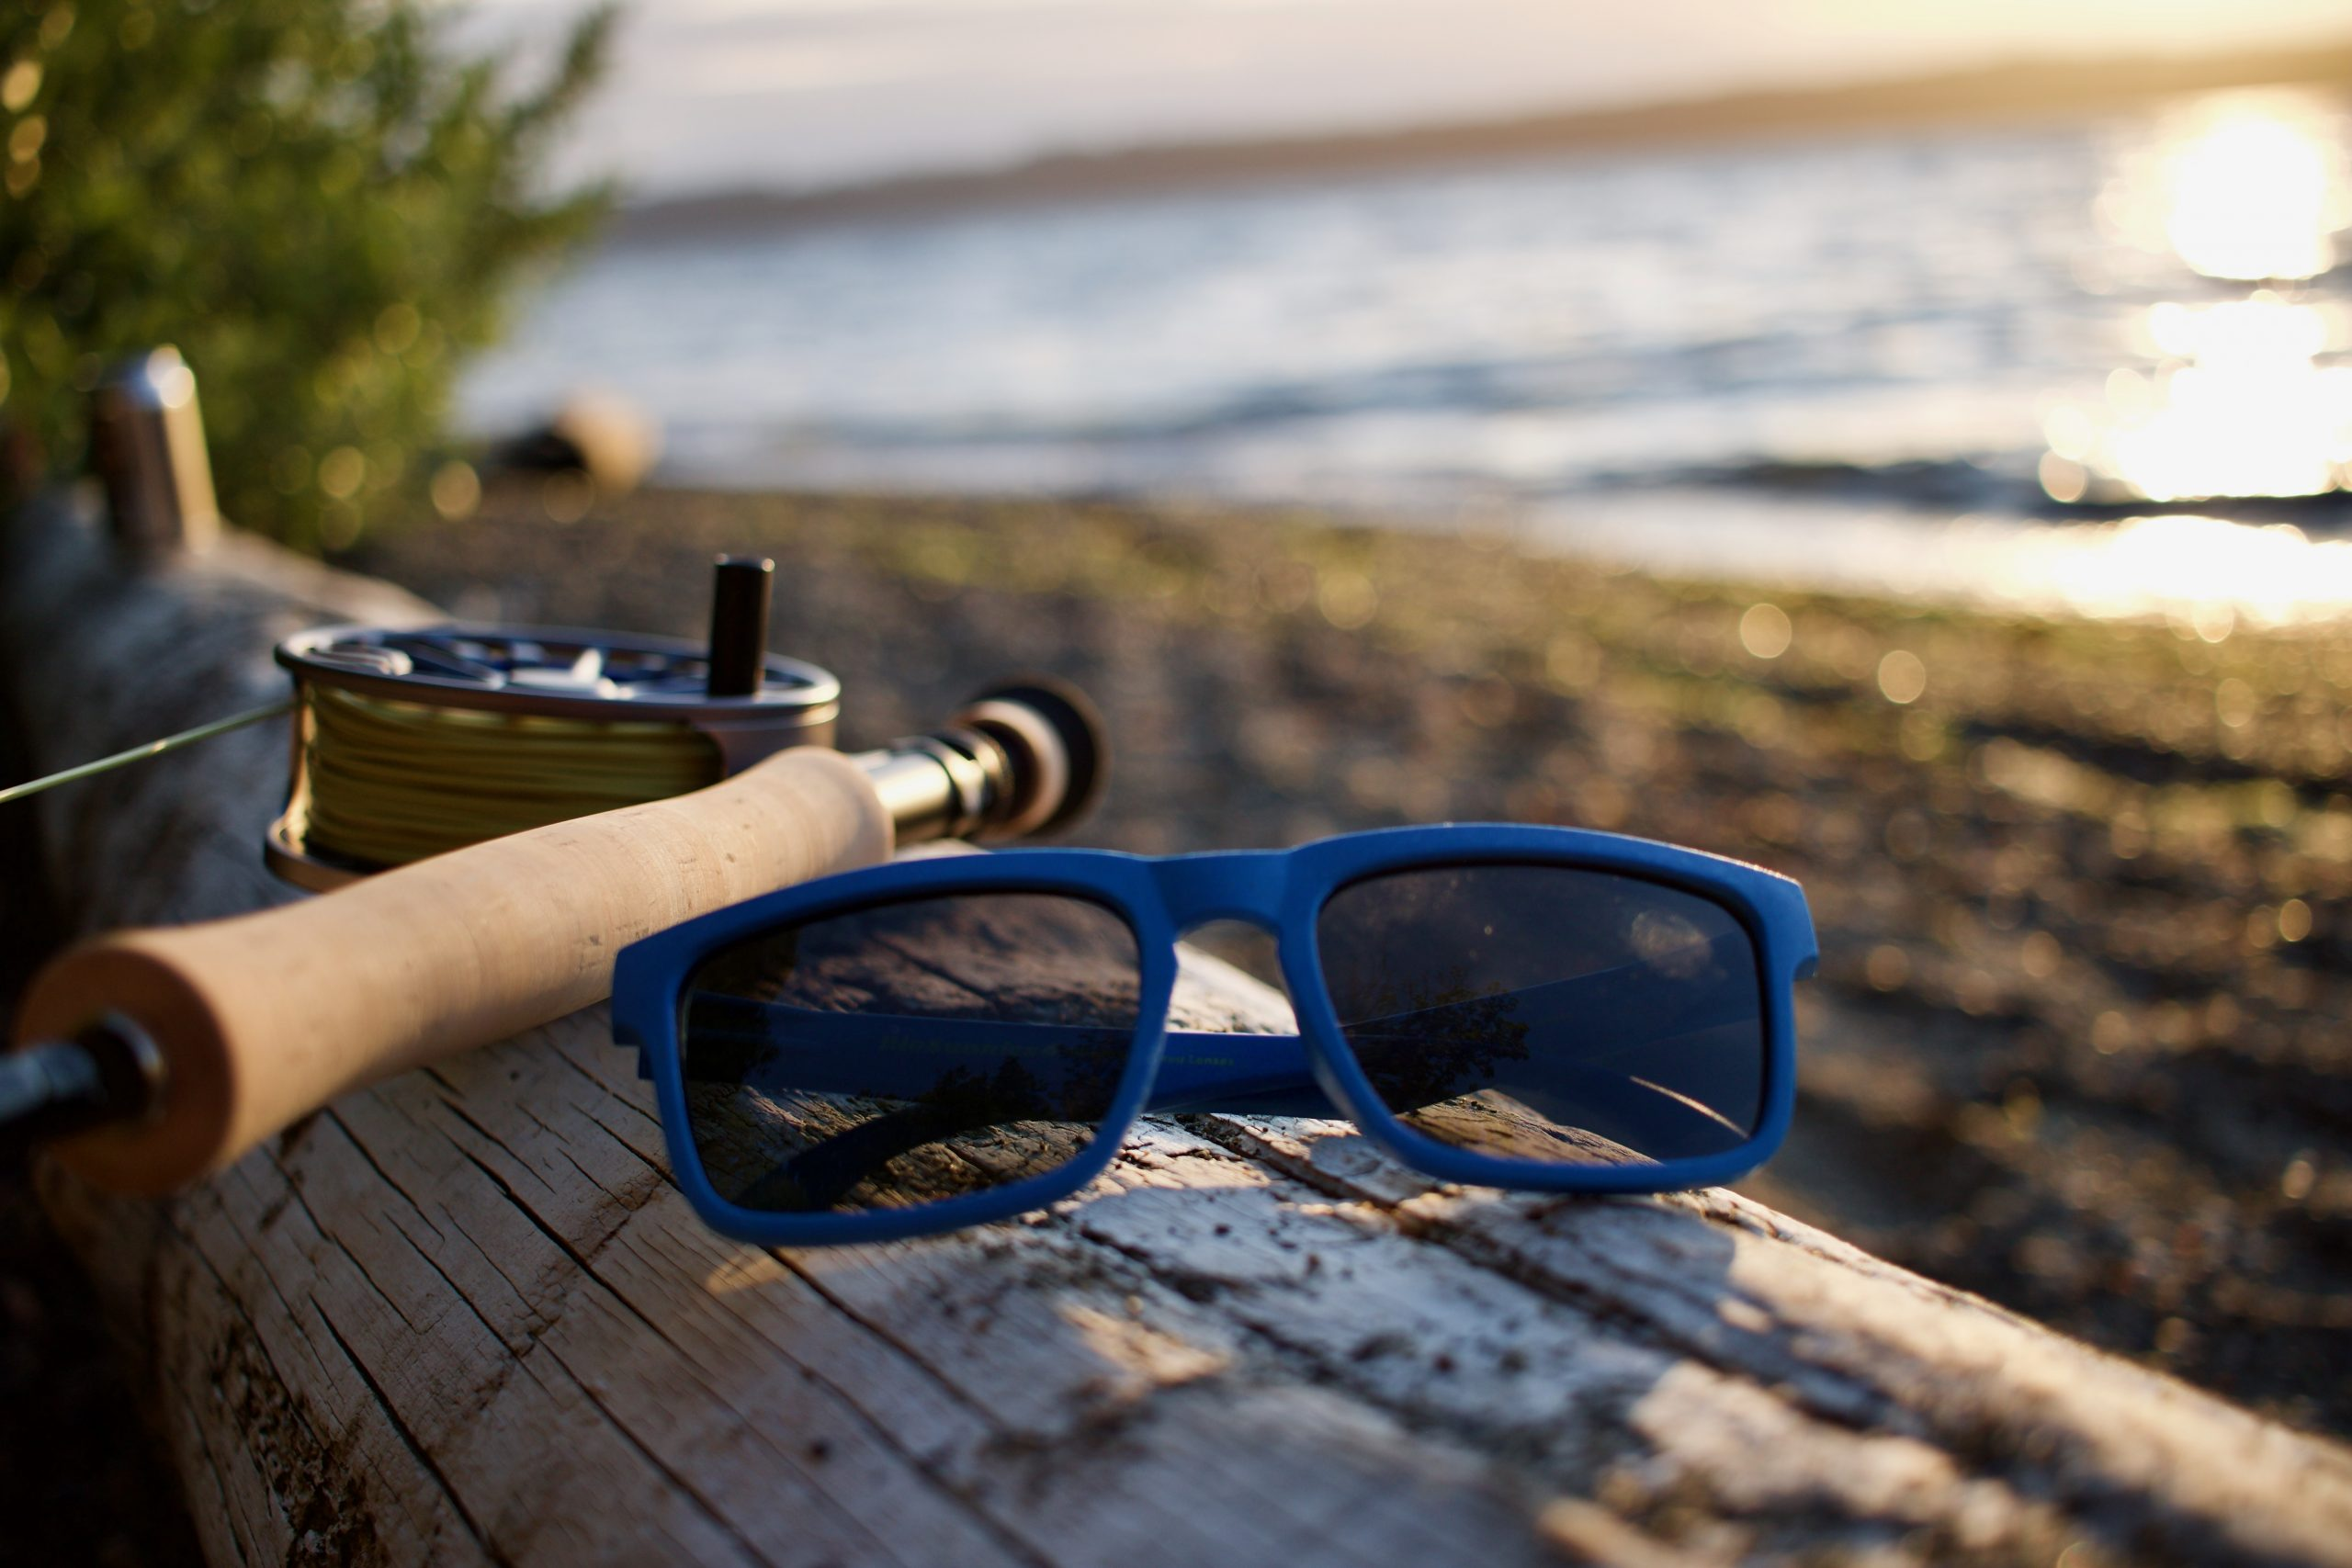 Blue sunglasses folded up, laying on a beach log in front of a fly fishing rod